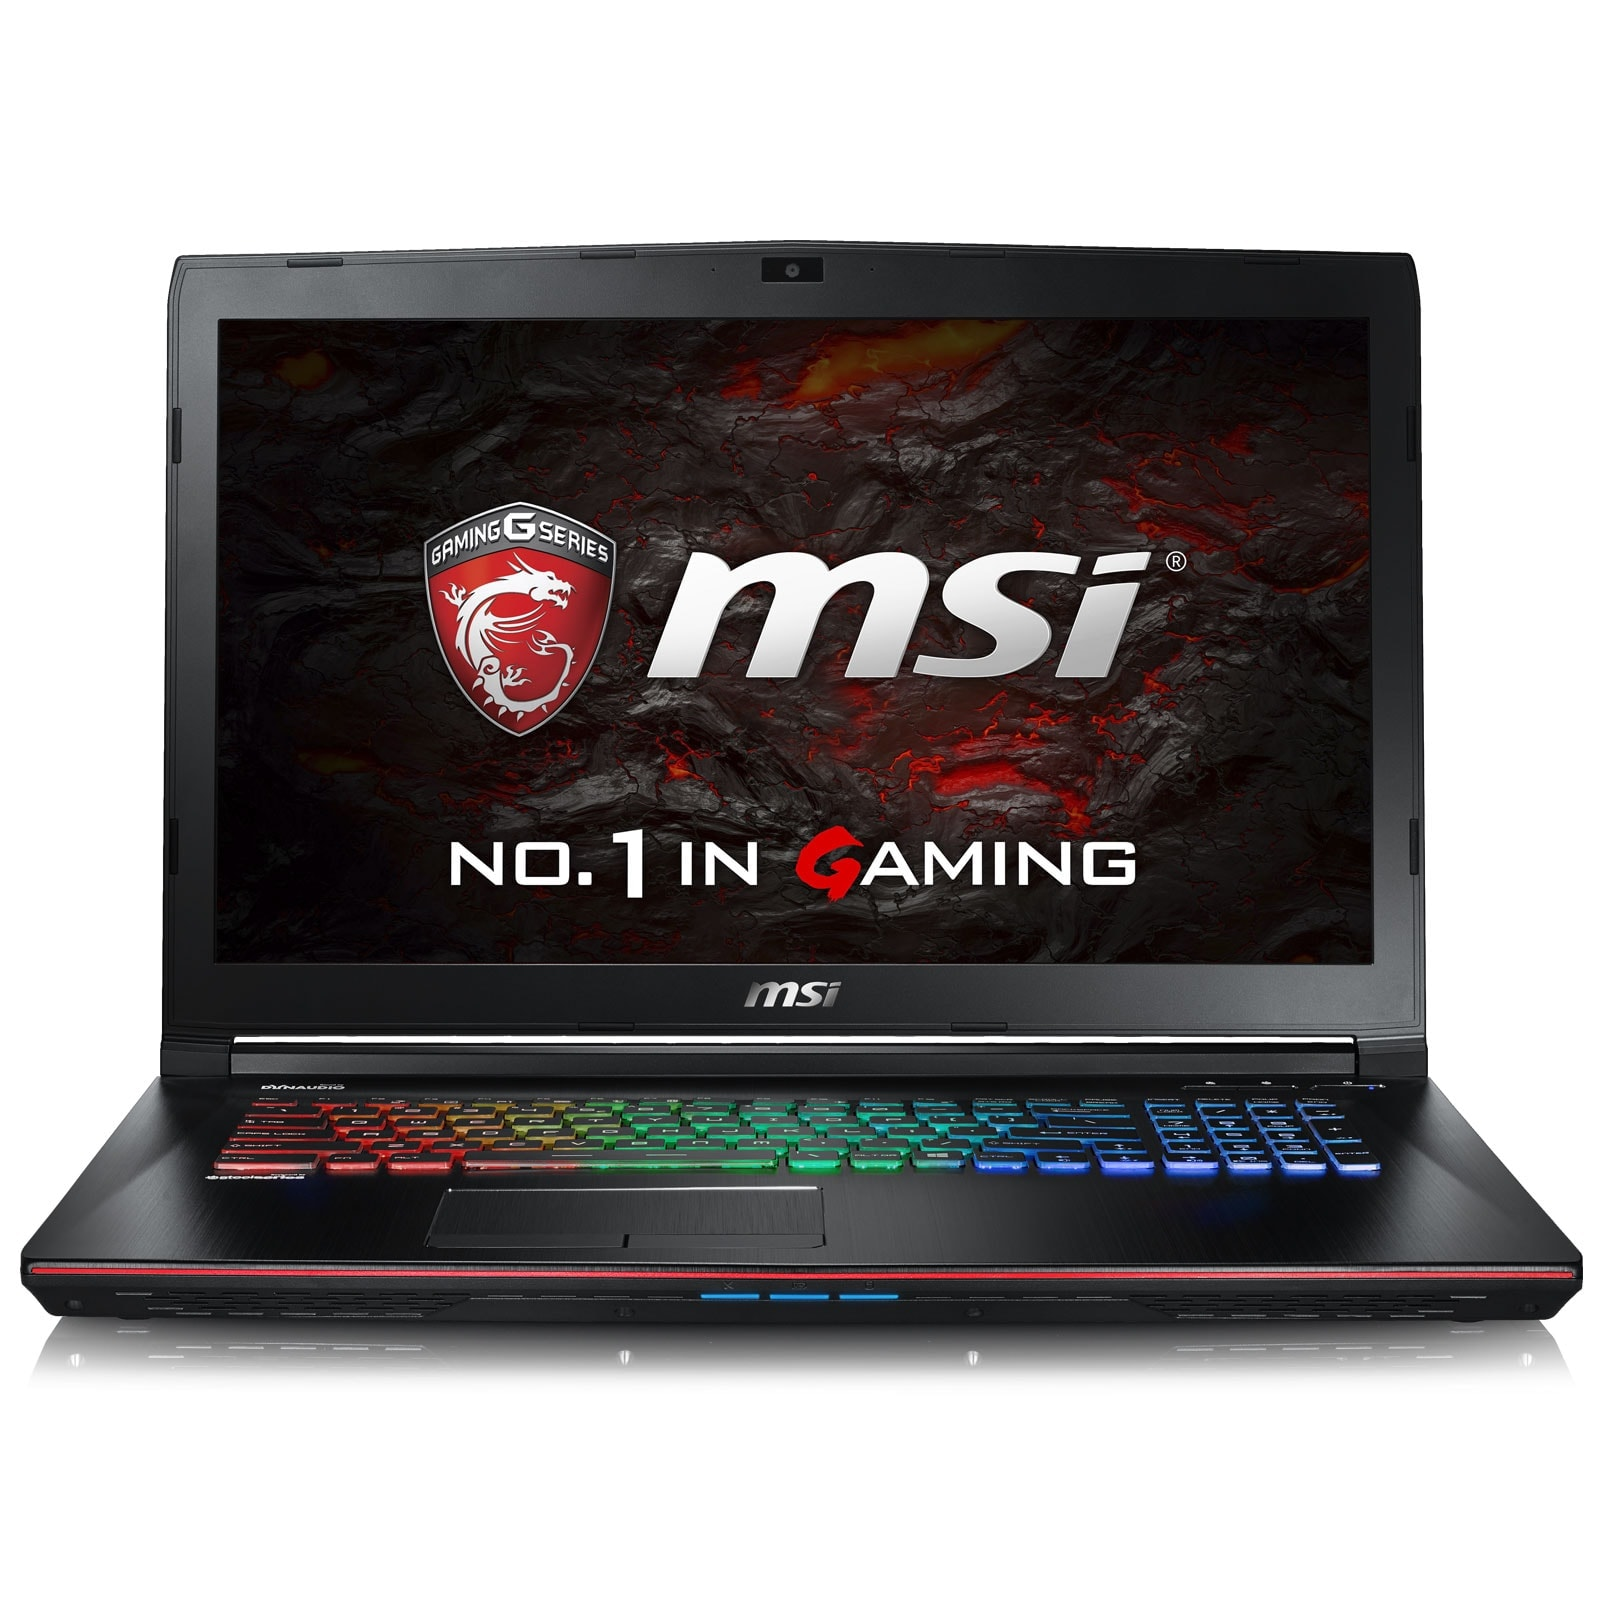 MSI 9S7-179B11-019 - PC portable MSI - Cybertek.fr - 2